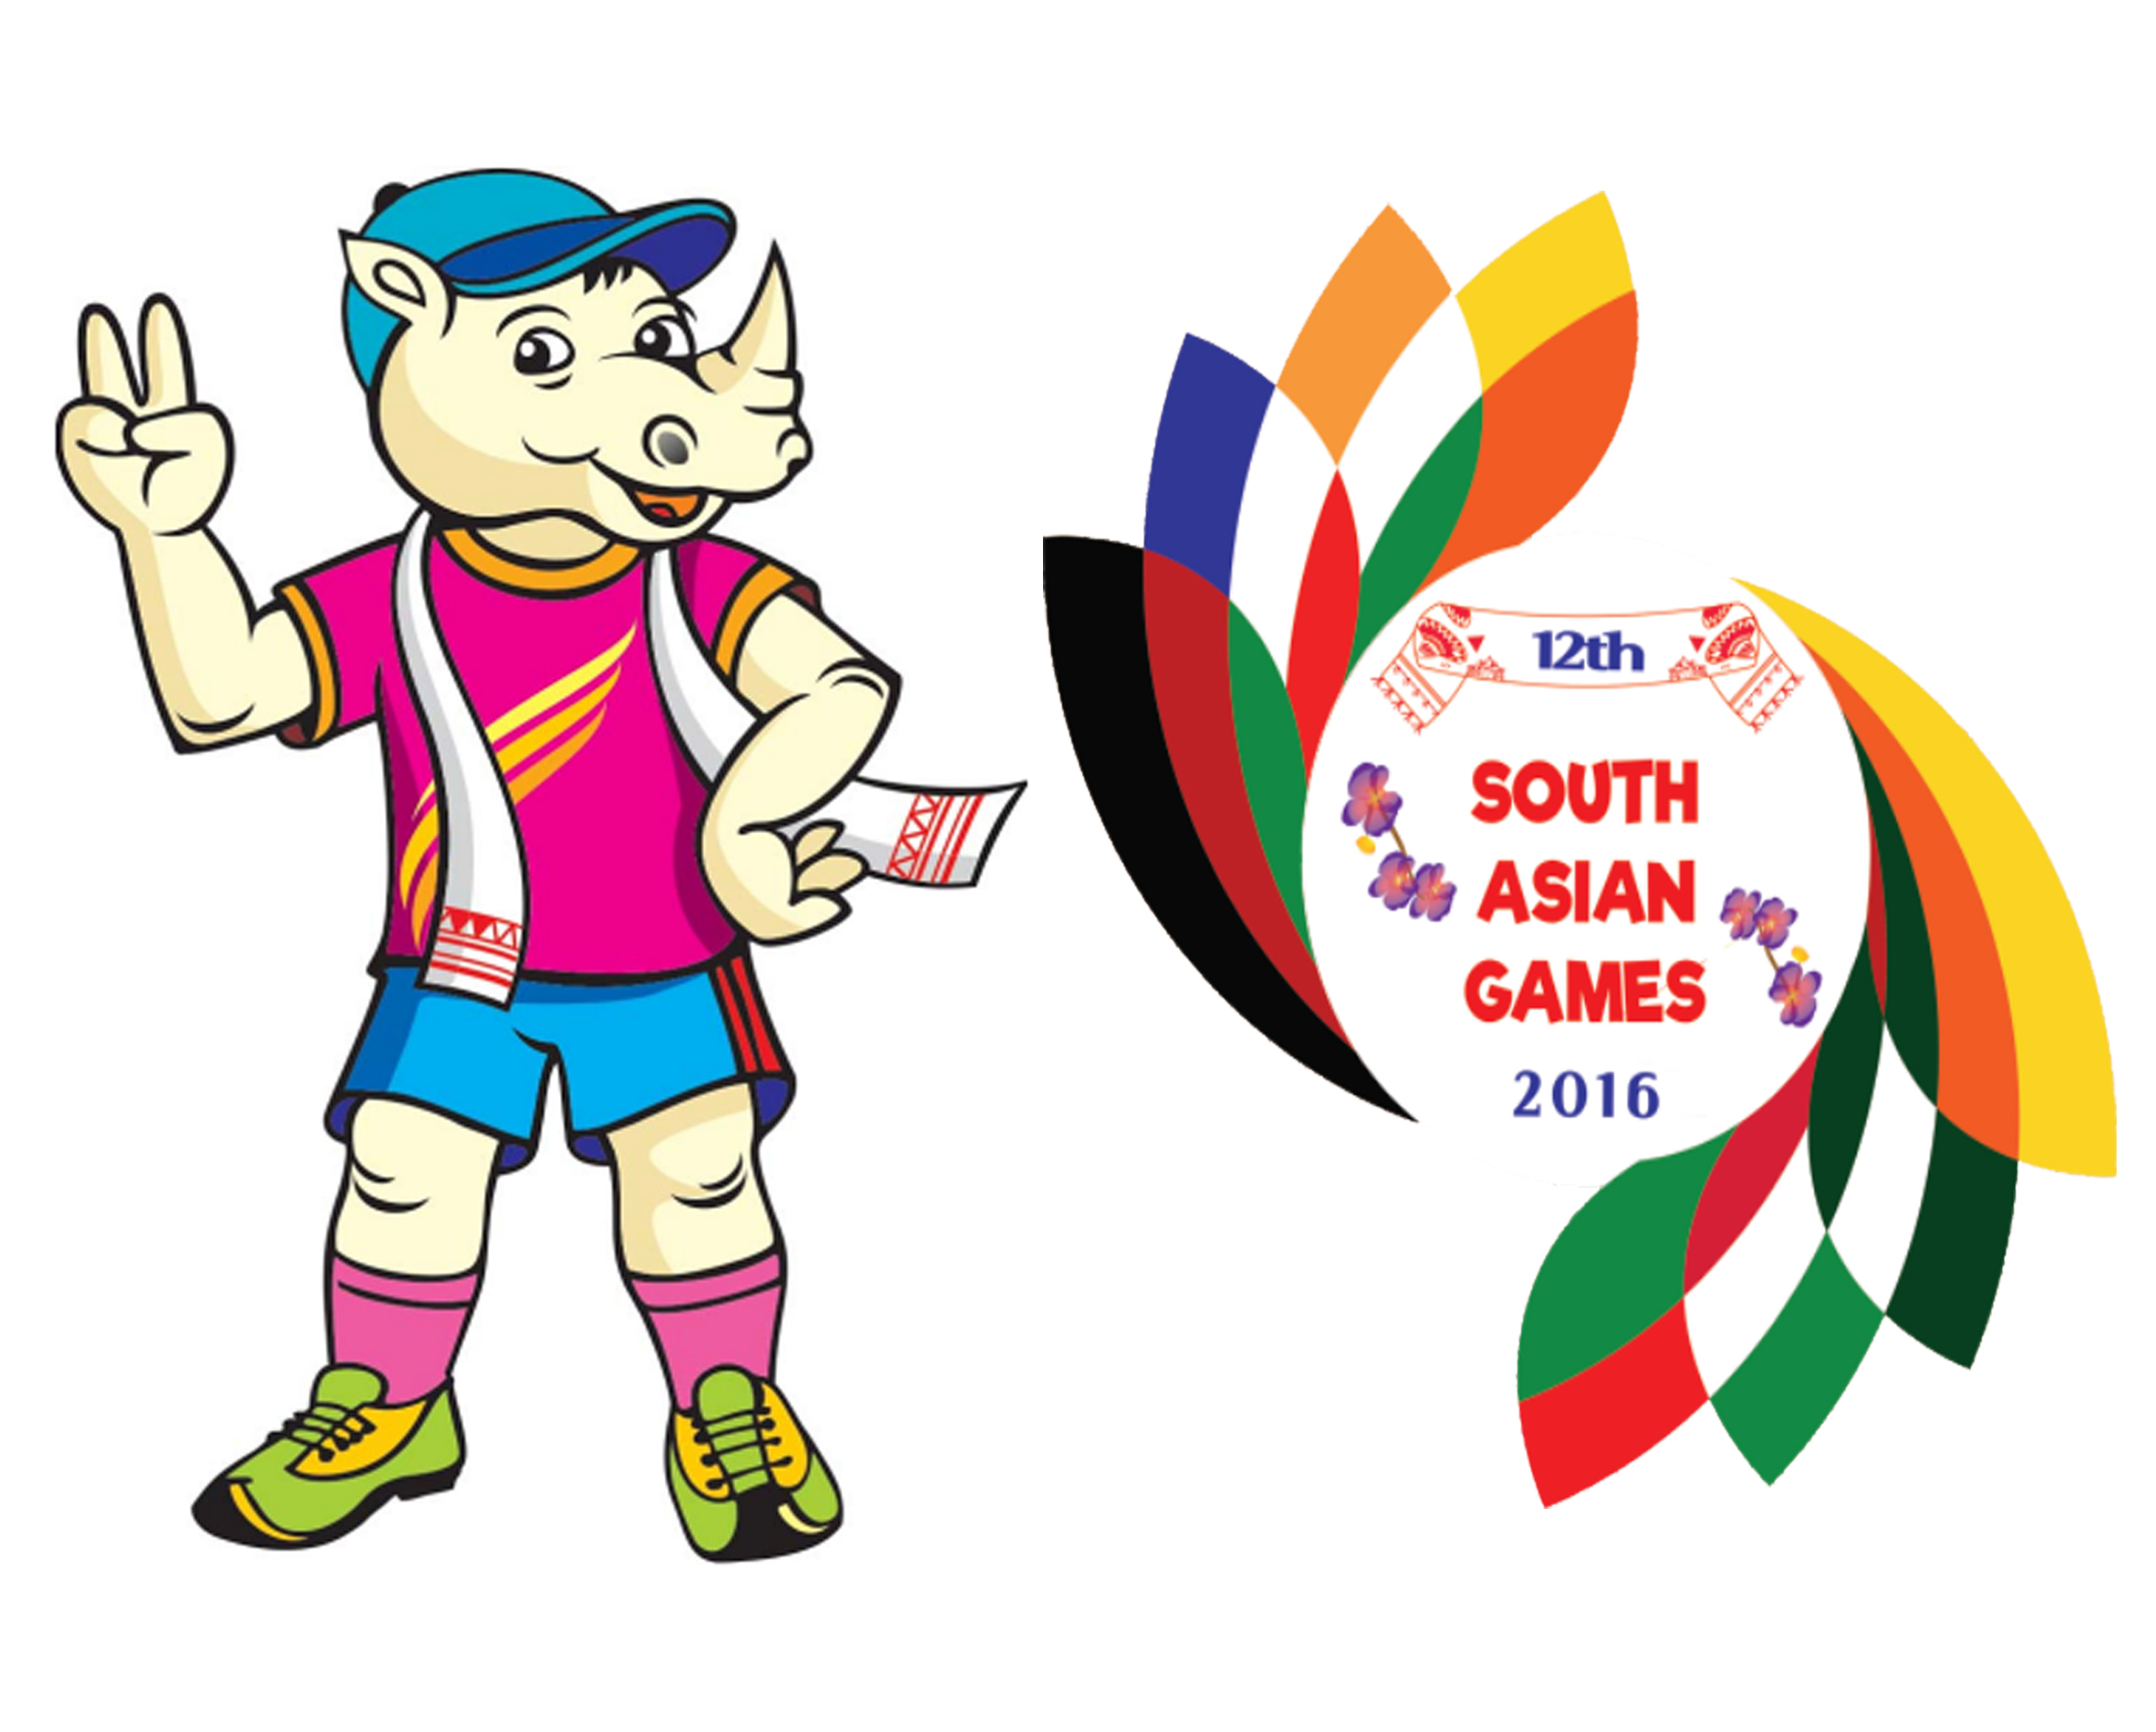 http://www.edristi.in/wp-content/uploads/2016/02/South-Asian-Games-2016.jpg